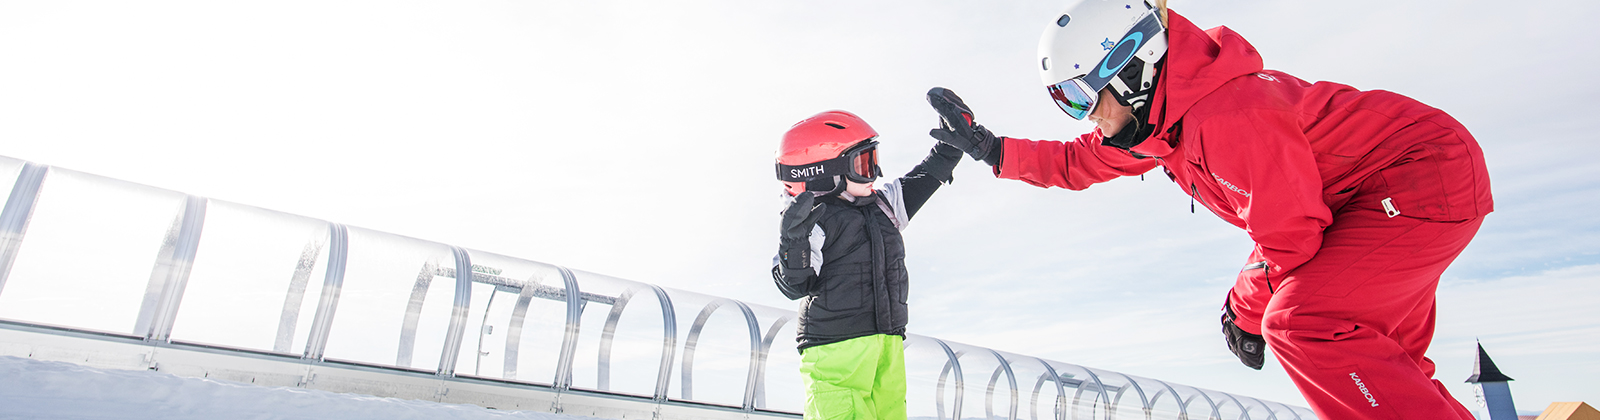 Best Age To Start Your Kid Snowboarding